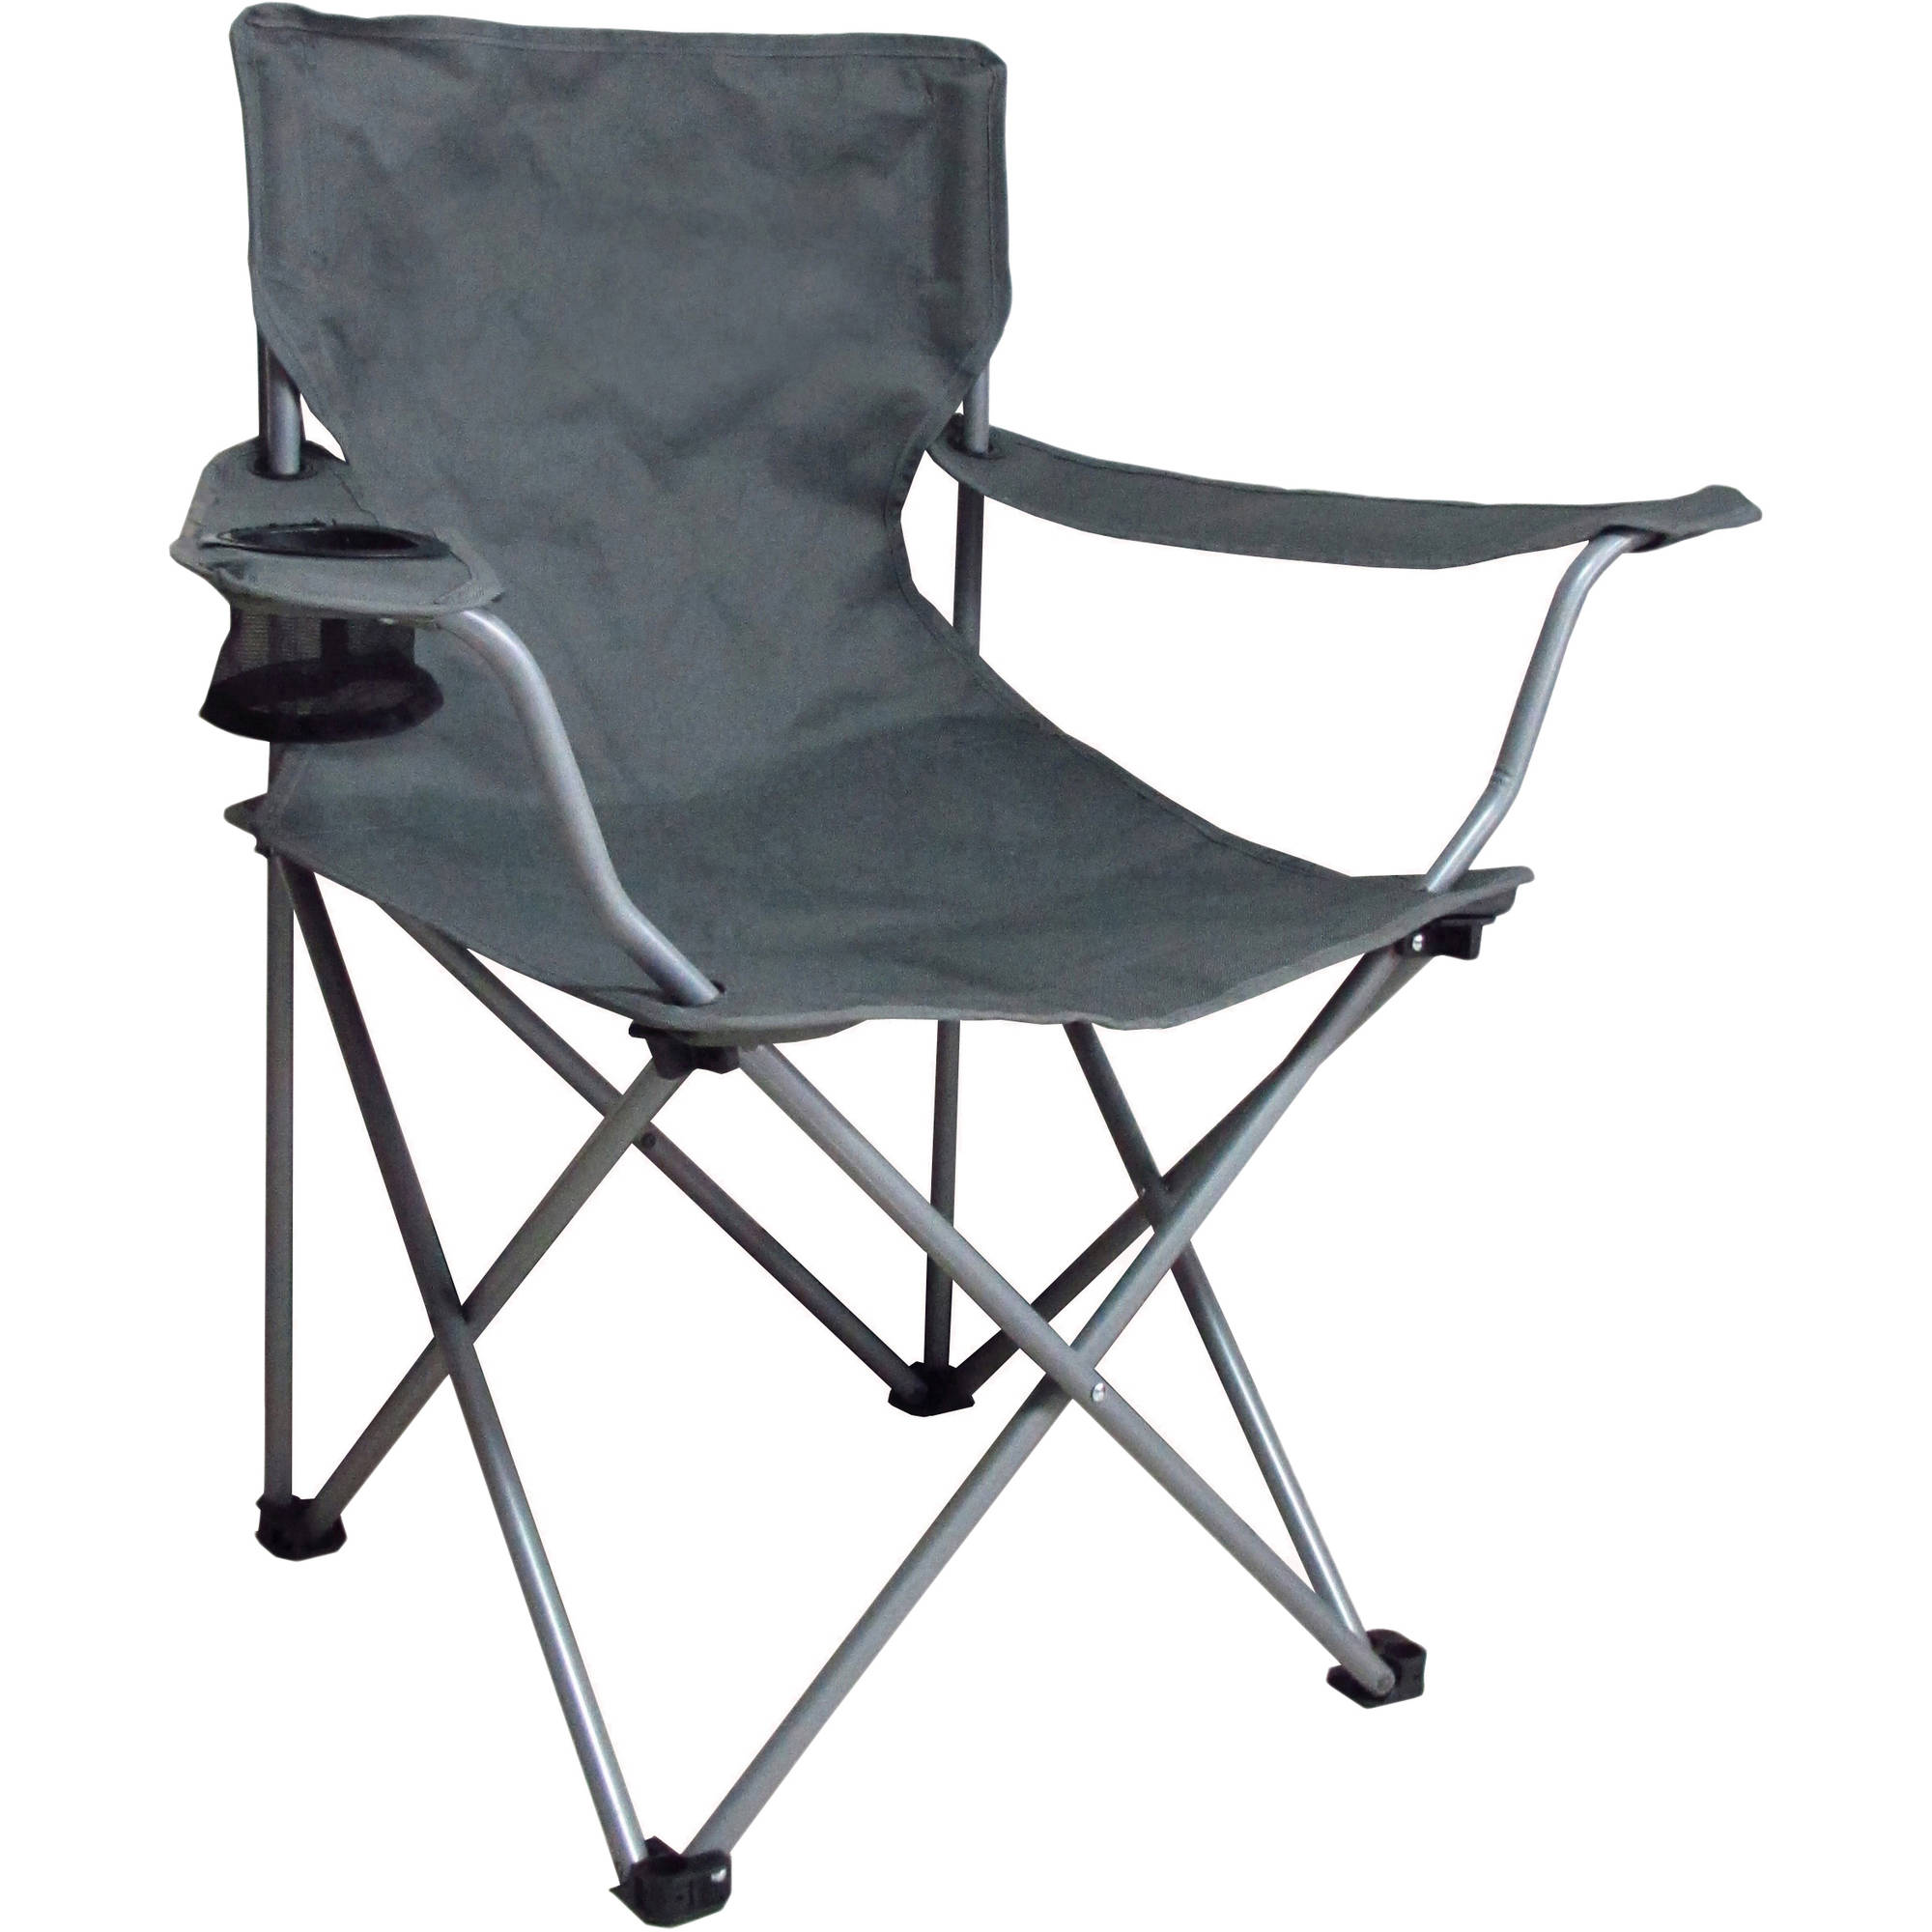 Stupendous Ozark Trail Folding Chair Walmart Com Bralicious Painted Fabric Chair Ideas Braliciousco